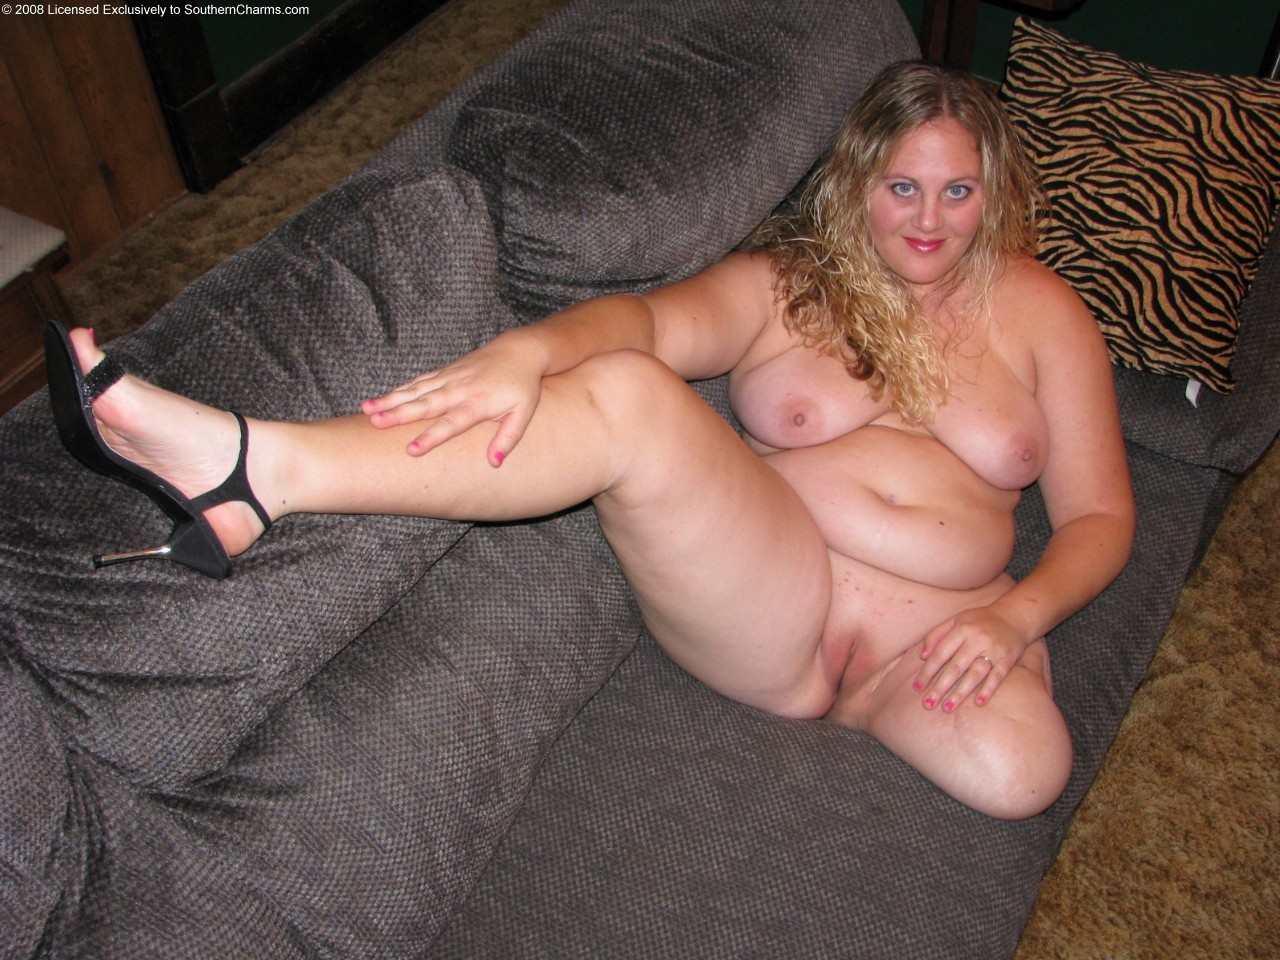 Amputee Humiliated Porn amputee female leg tubezzz porn photos | free download nude